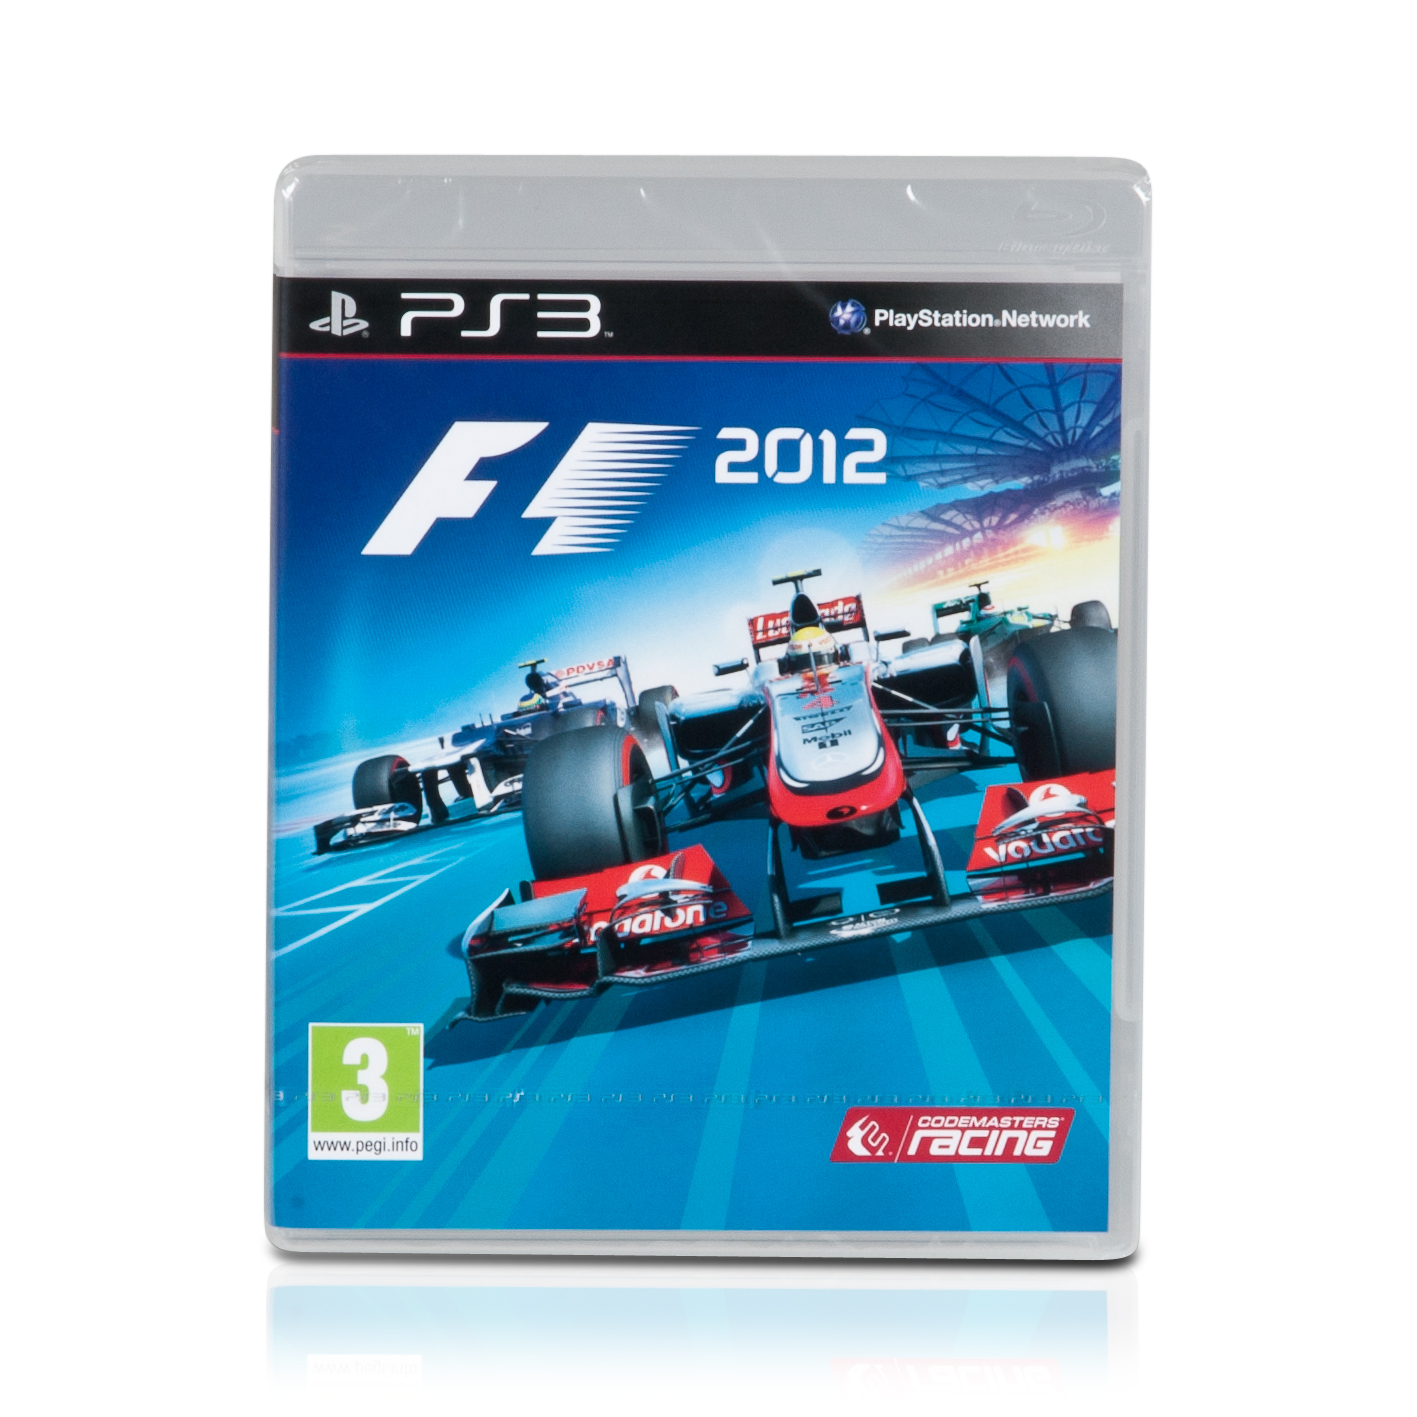 F1™ Formula One Video Game 2012 - PS3 - PAL